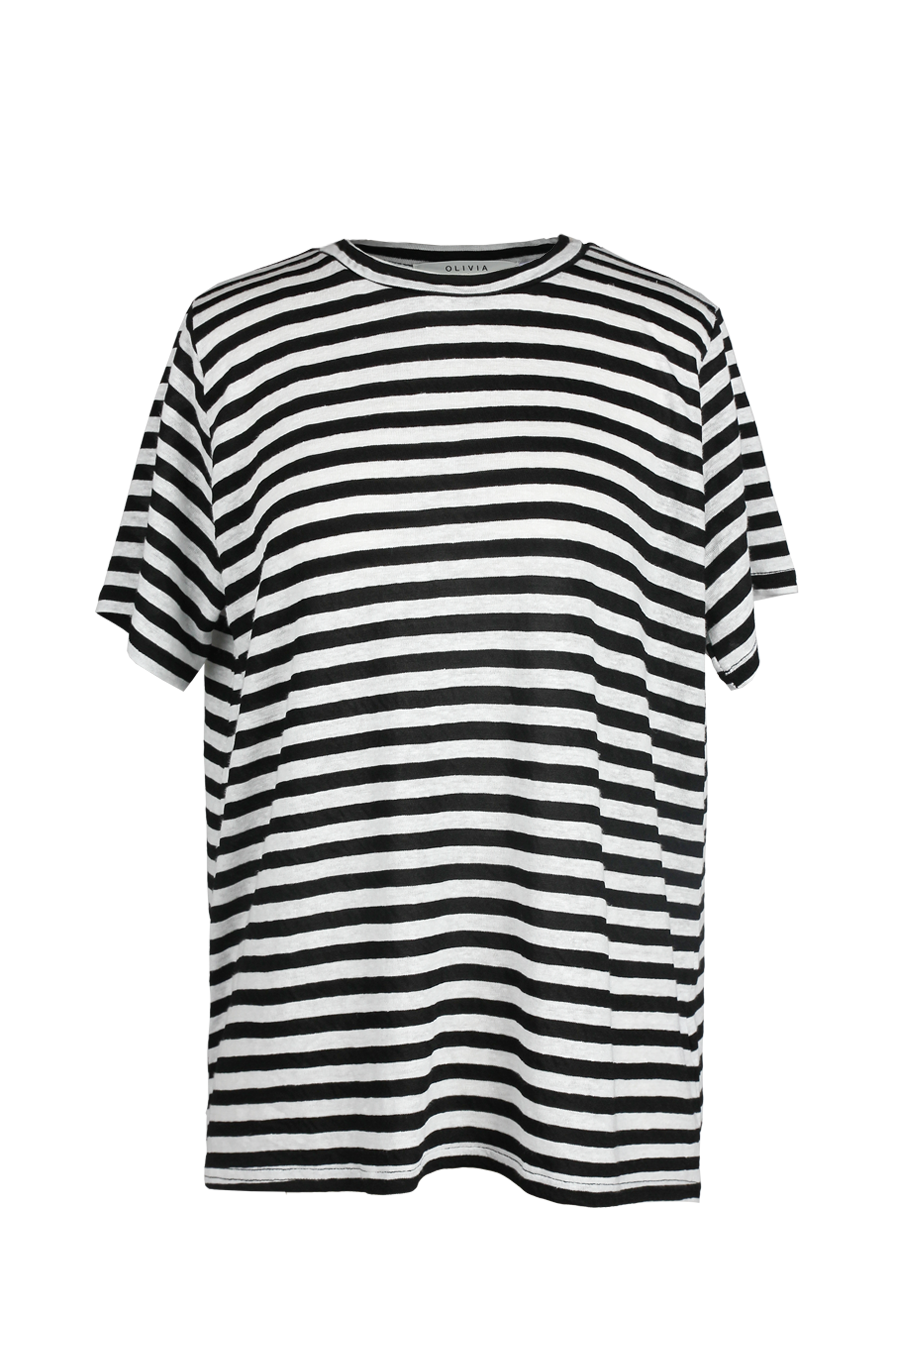 OLIVIA NZ Store online | Sasha Stripe Top / Black